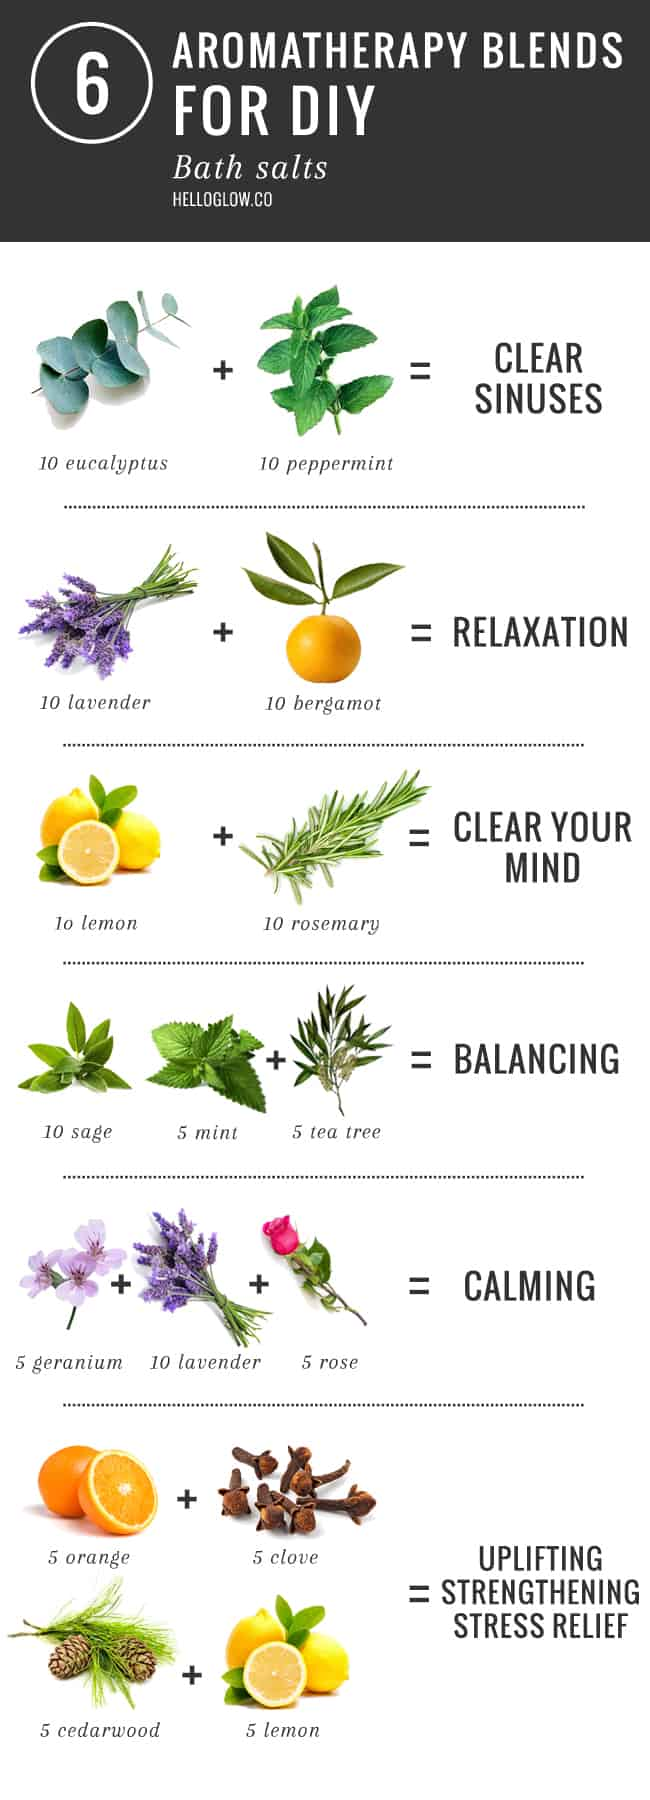 Aromatherapy Blends for Bath Salts